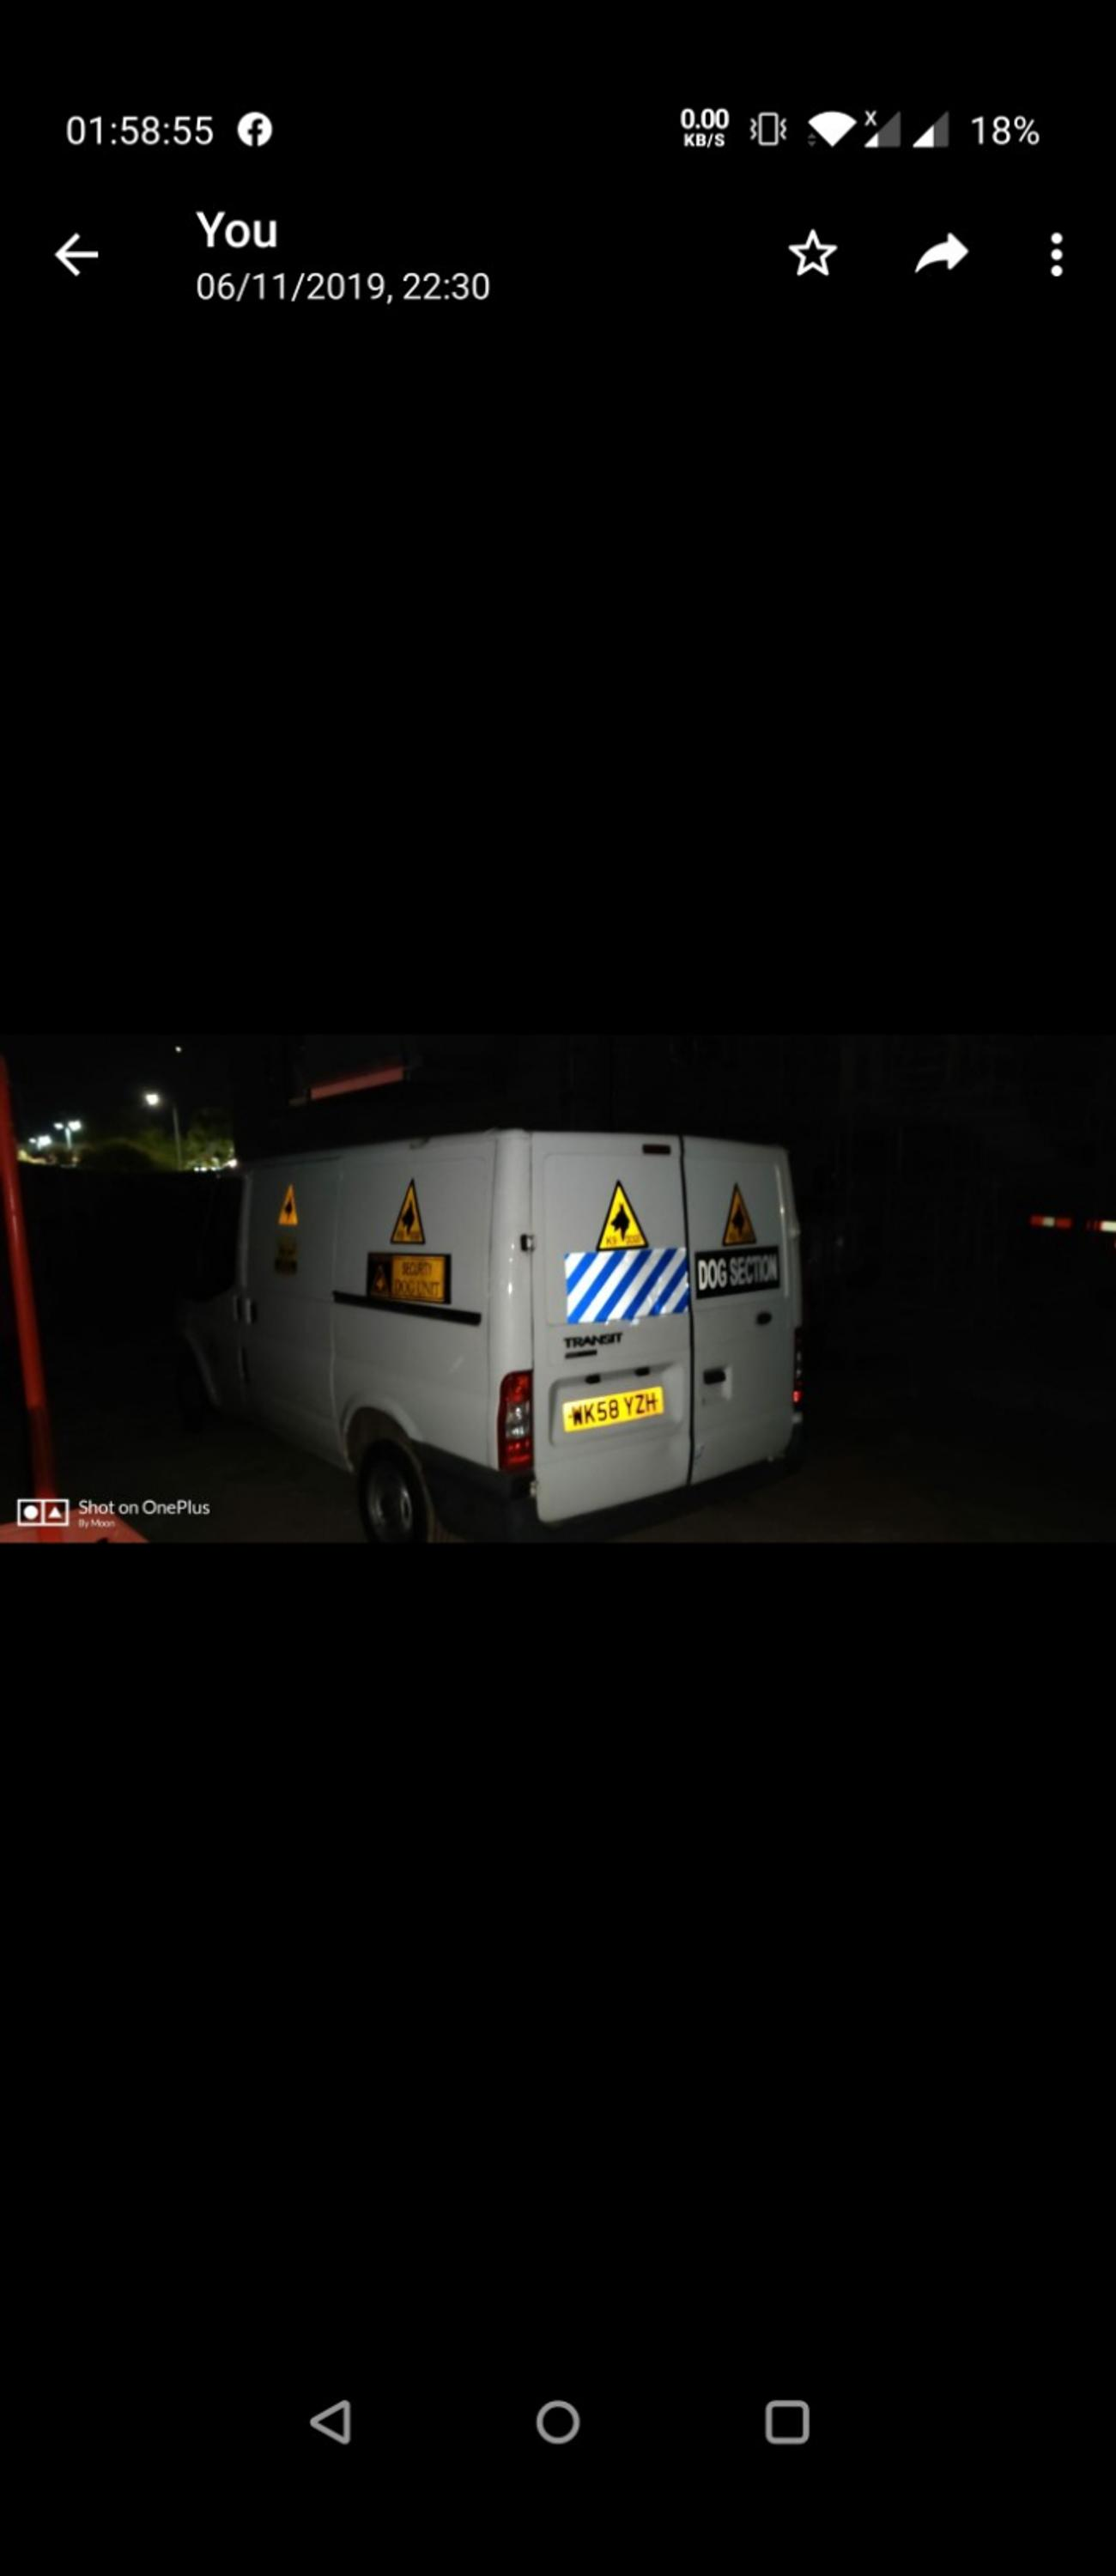 dog security van good van never let me down mot is expr will get mot done if any one interested please get in touch thanks